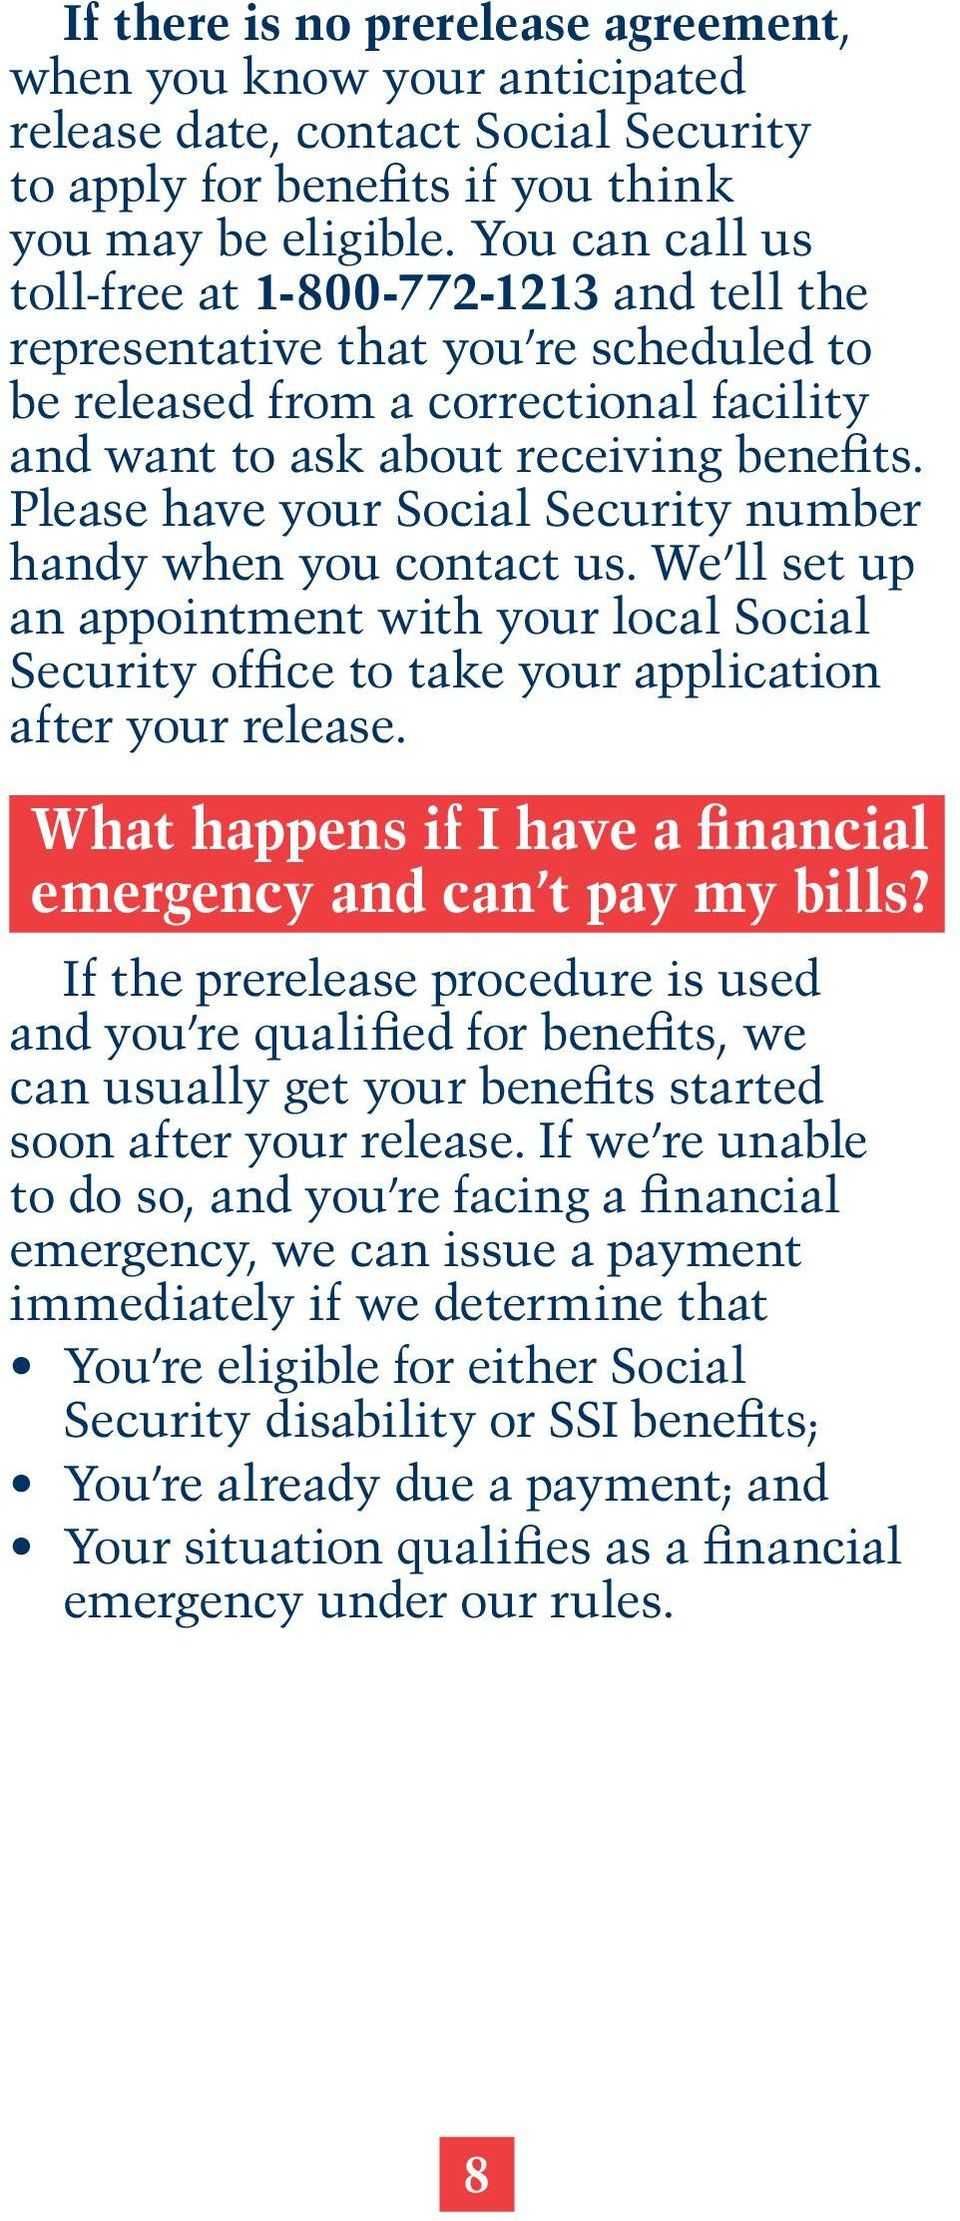 Please have your Social Security number handy when you contact us. We ll set up an appointment with your local Social Security office to take your application after your release.